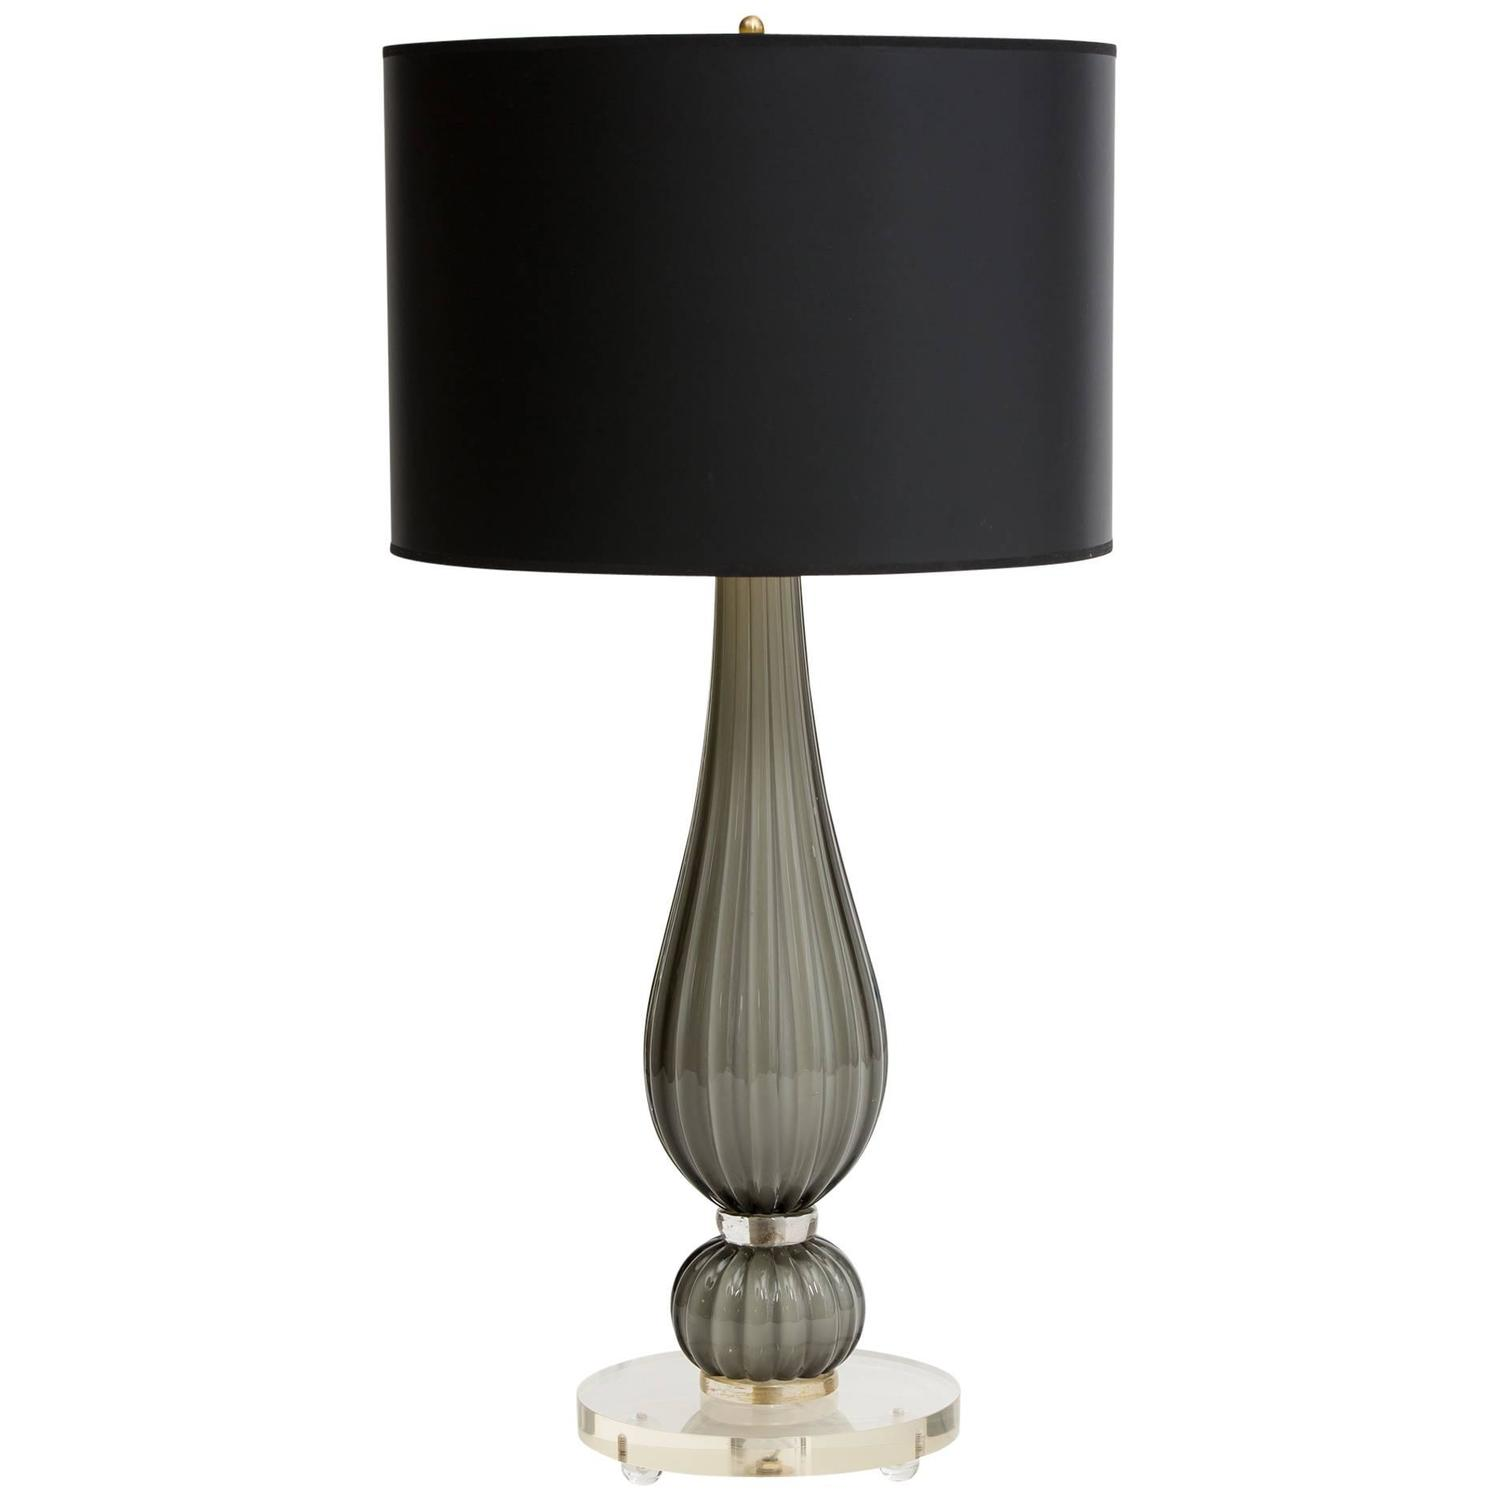 murano glass lucite base table lamp for sale at 1stdibs. Black Bedroom Furniture Sets. Home Design Ideas